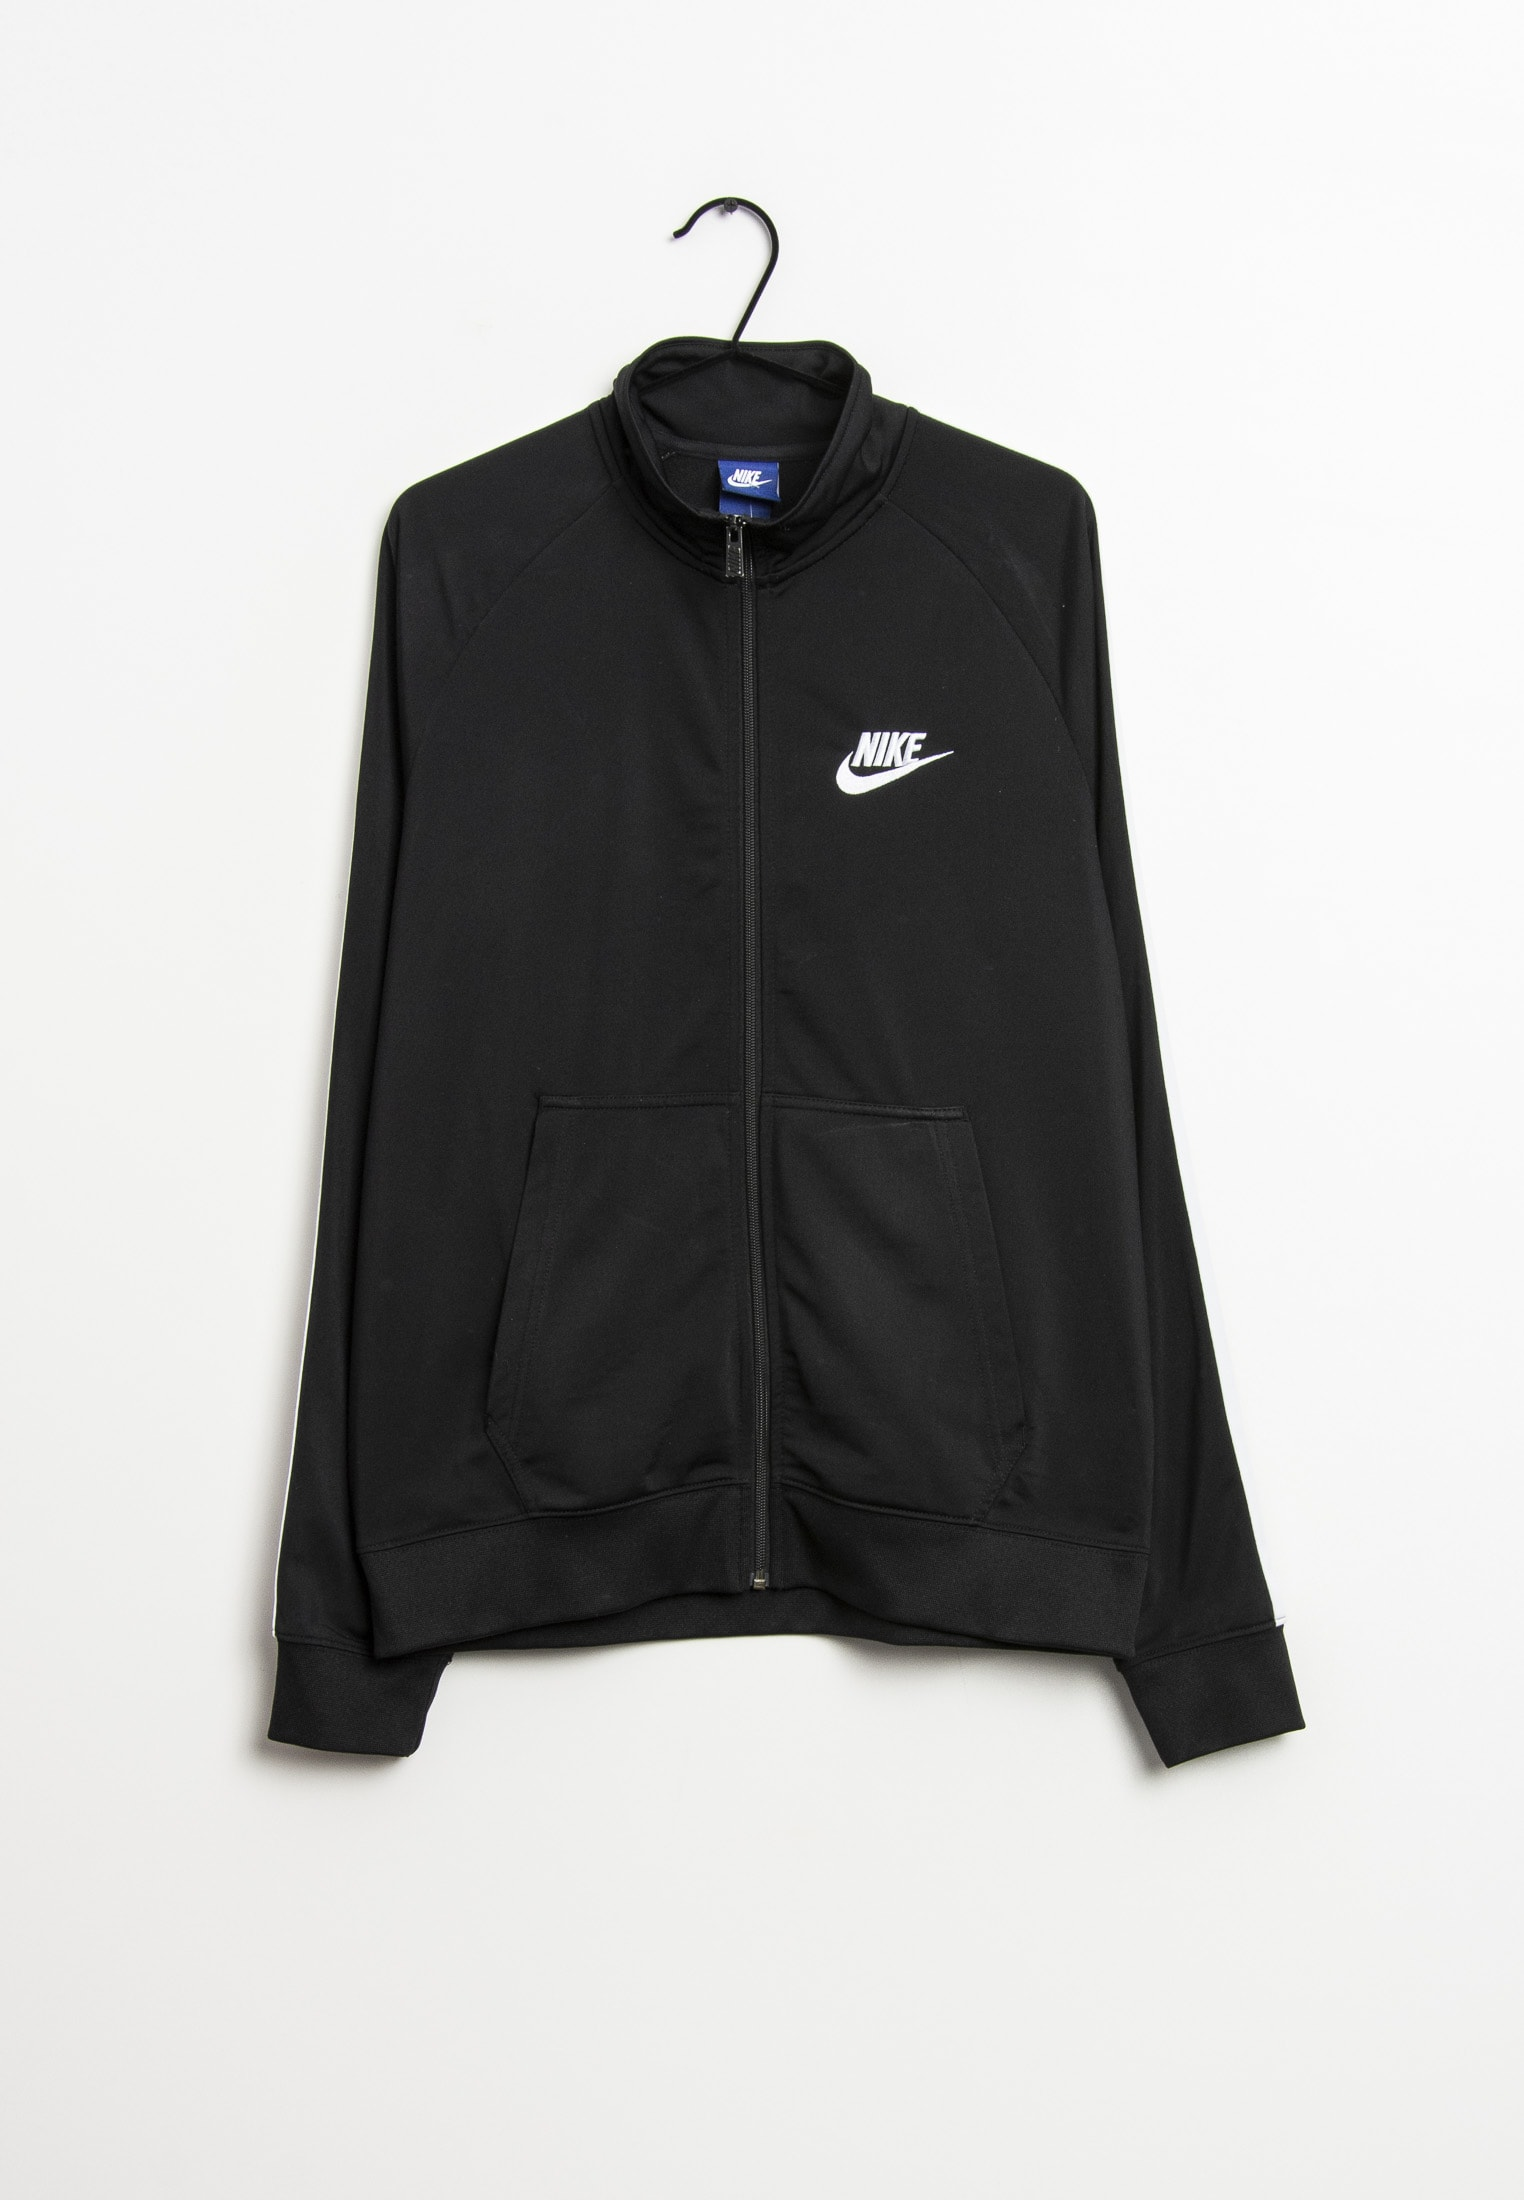 Nike Sweat / Fleece Schwarz Gr.L